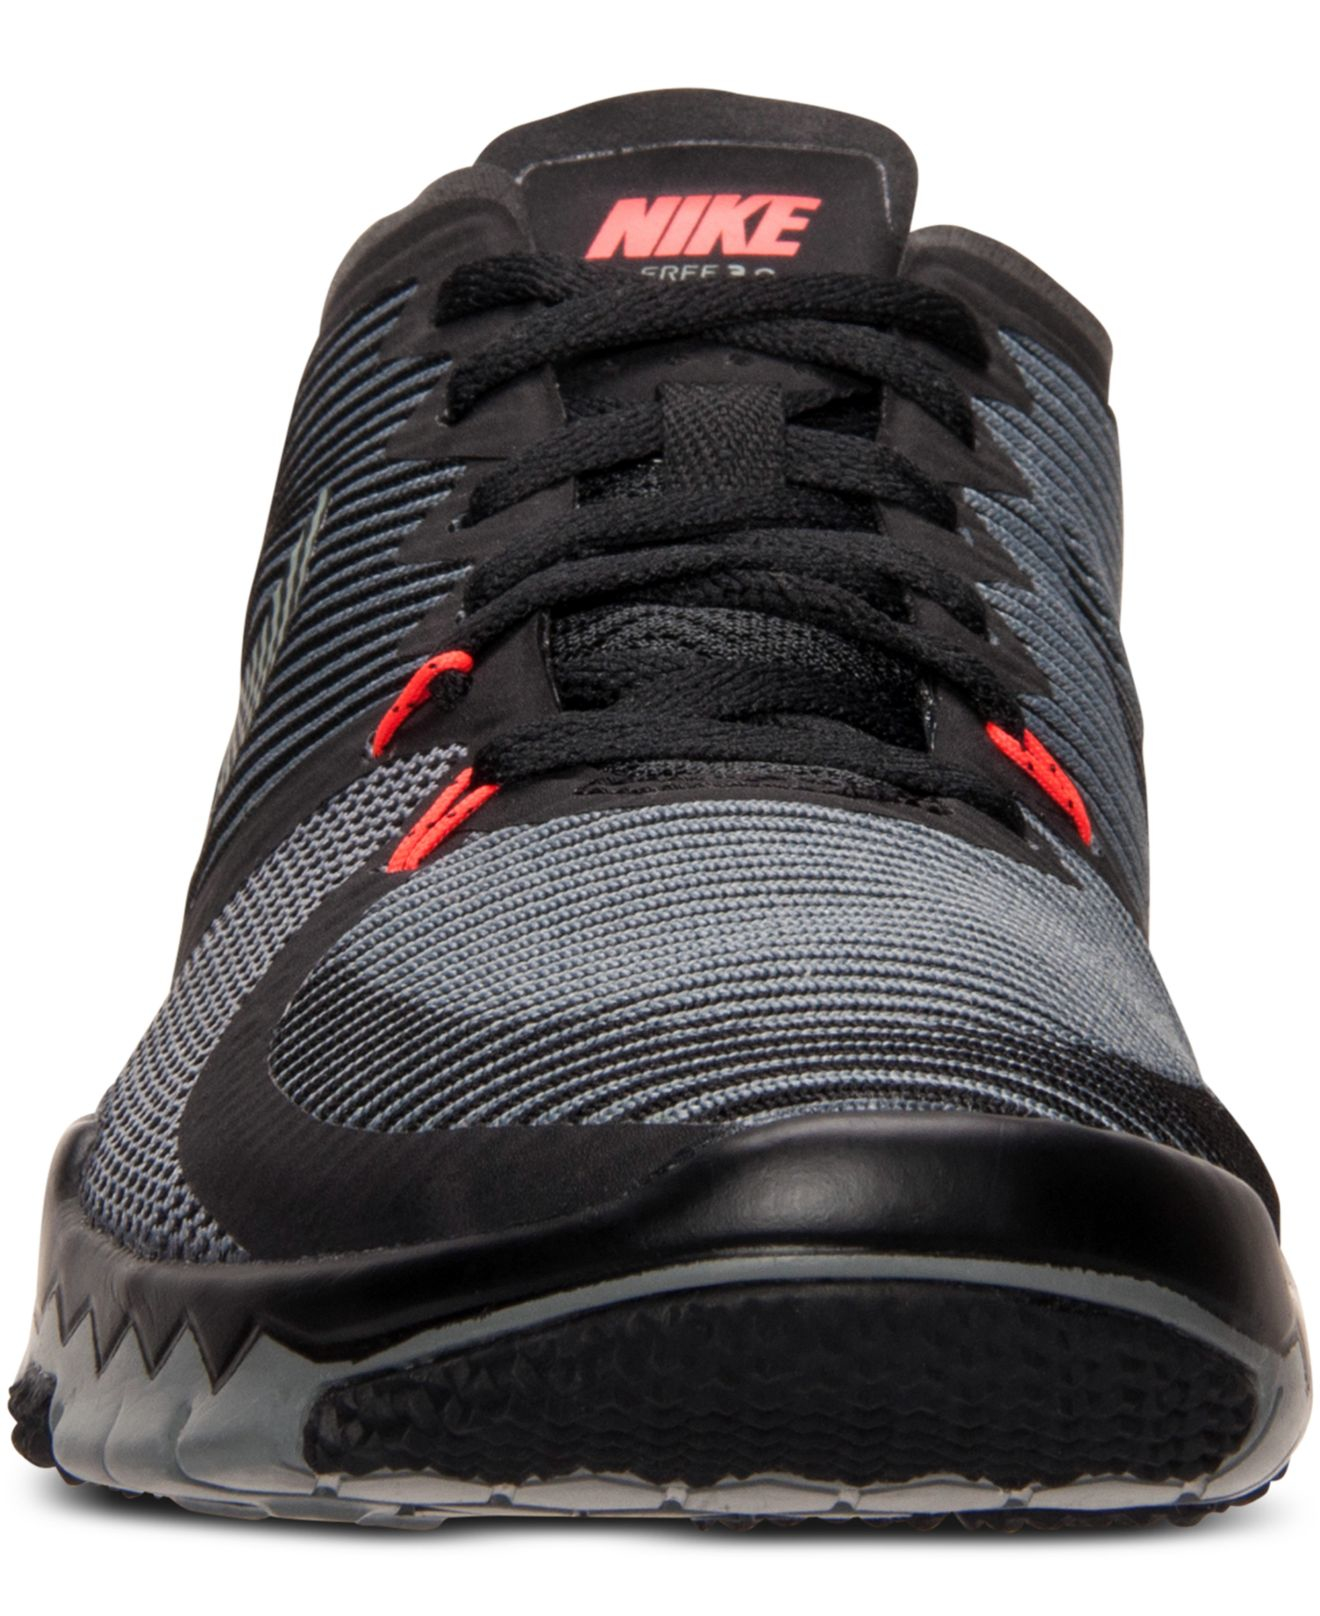 04af9bc09fc7 Lyst - Nike Men s Free Trainer 3.0 V4 Training Sneakers From Finish ...